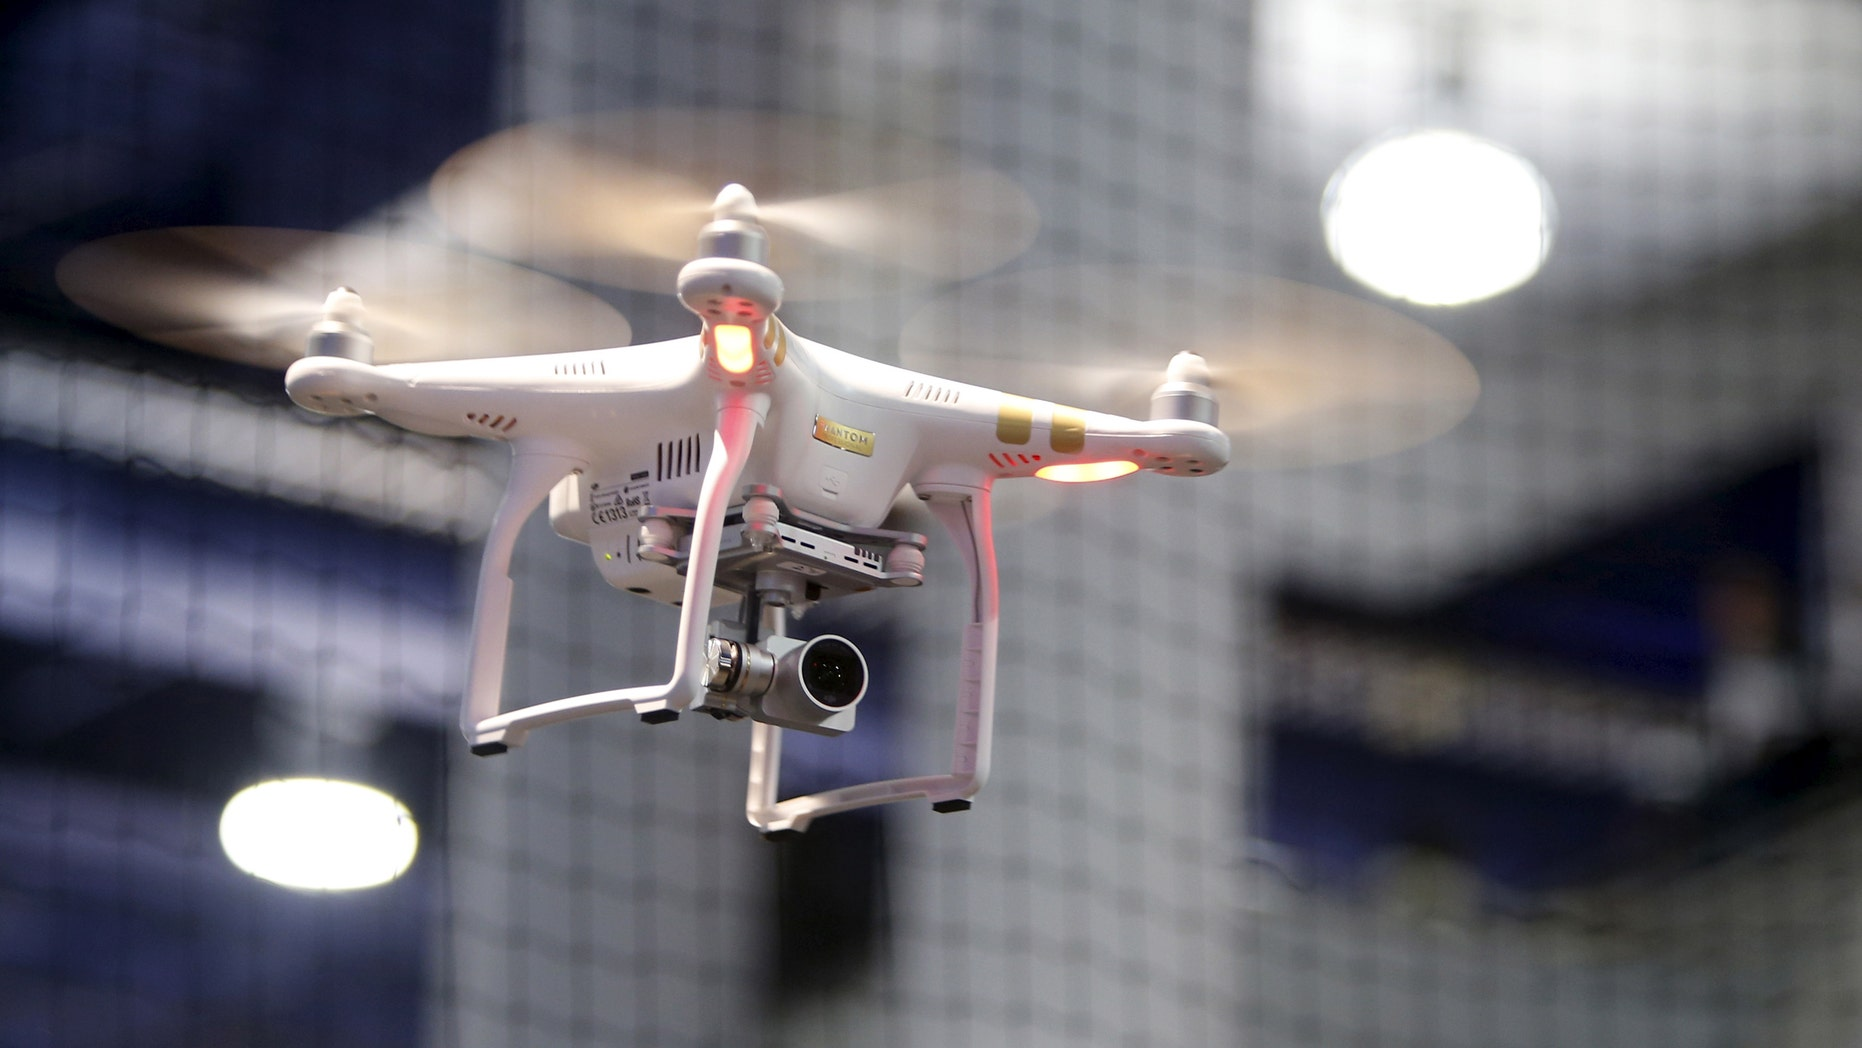 A DJI Phantom 3 Professional drone with 4K video flies in a drone cage during the 2016 CES trade show in Las Vegas, Nevada January 8, 2016 (REUTERS/Steve Marcus).